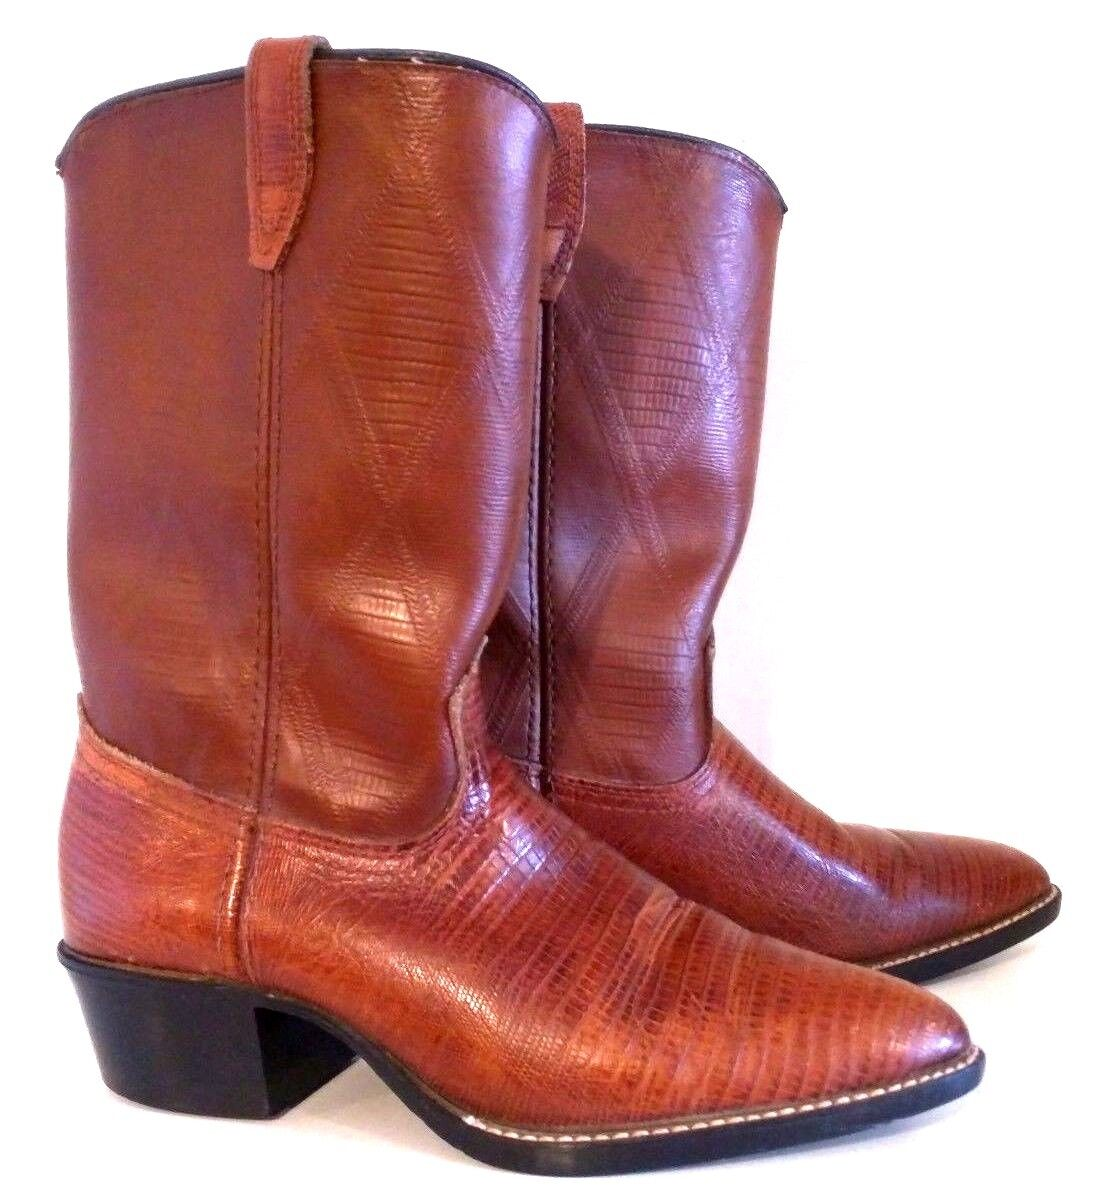 ACME - Men's Brown Pointed Toe Cowboy Boots - Size  5.5 B